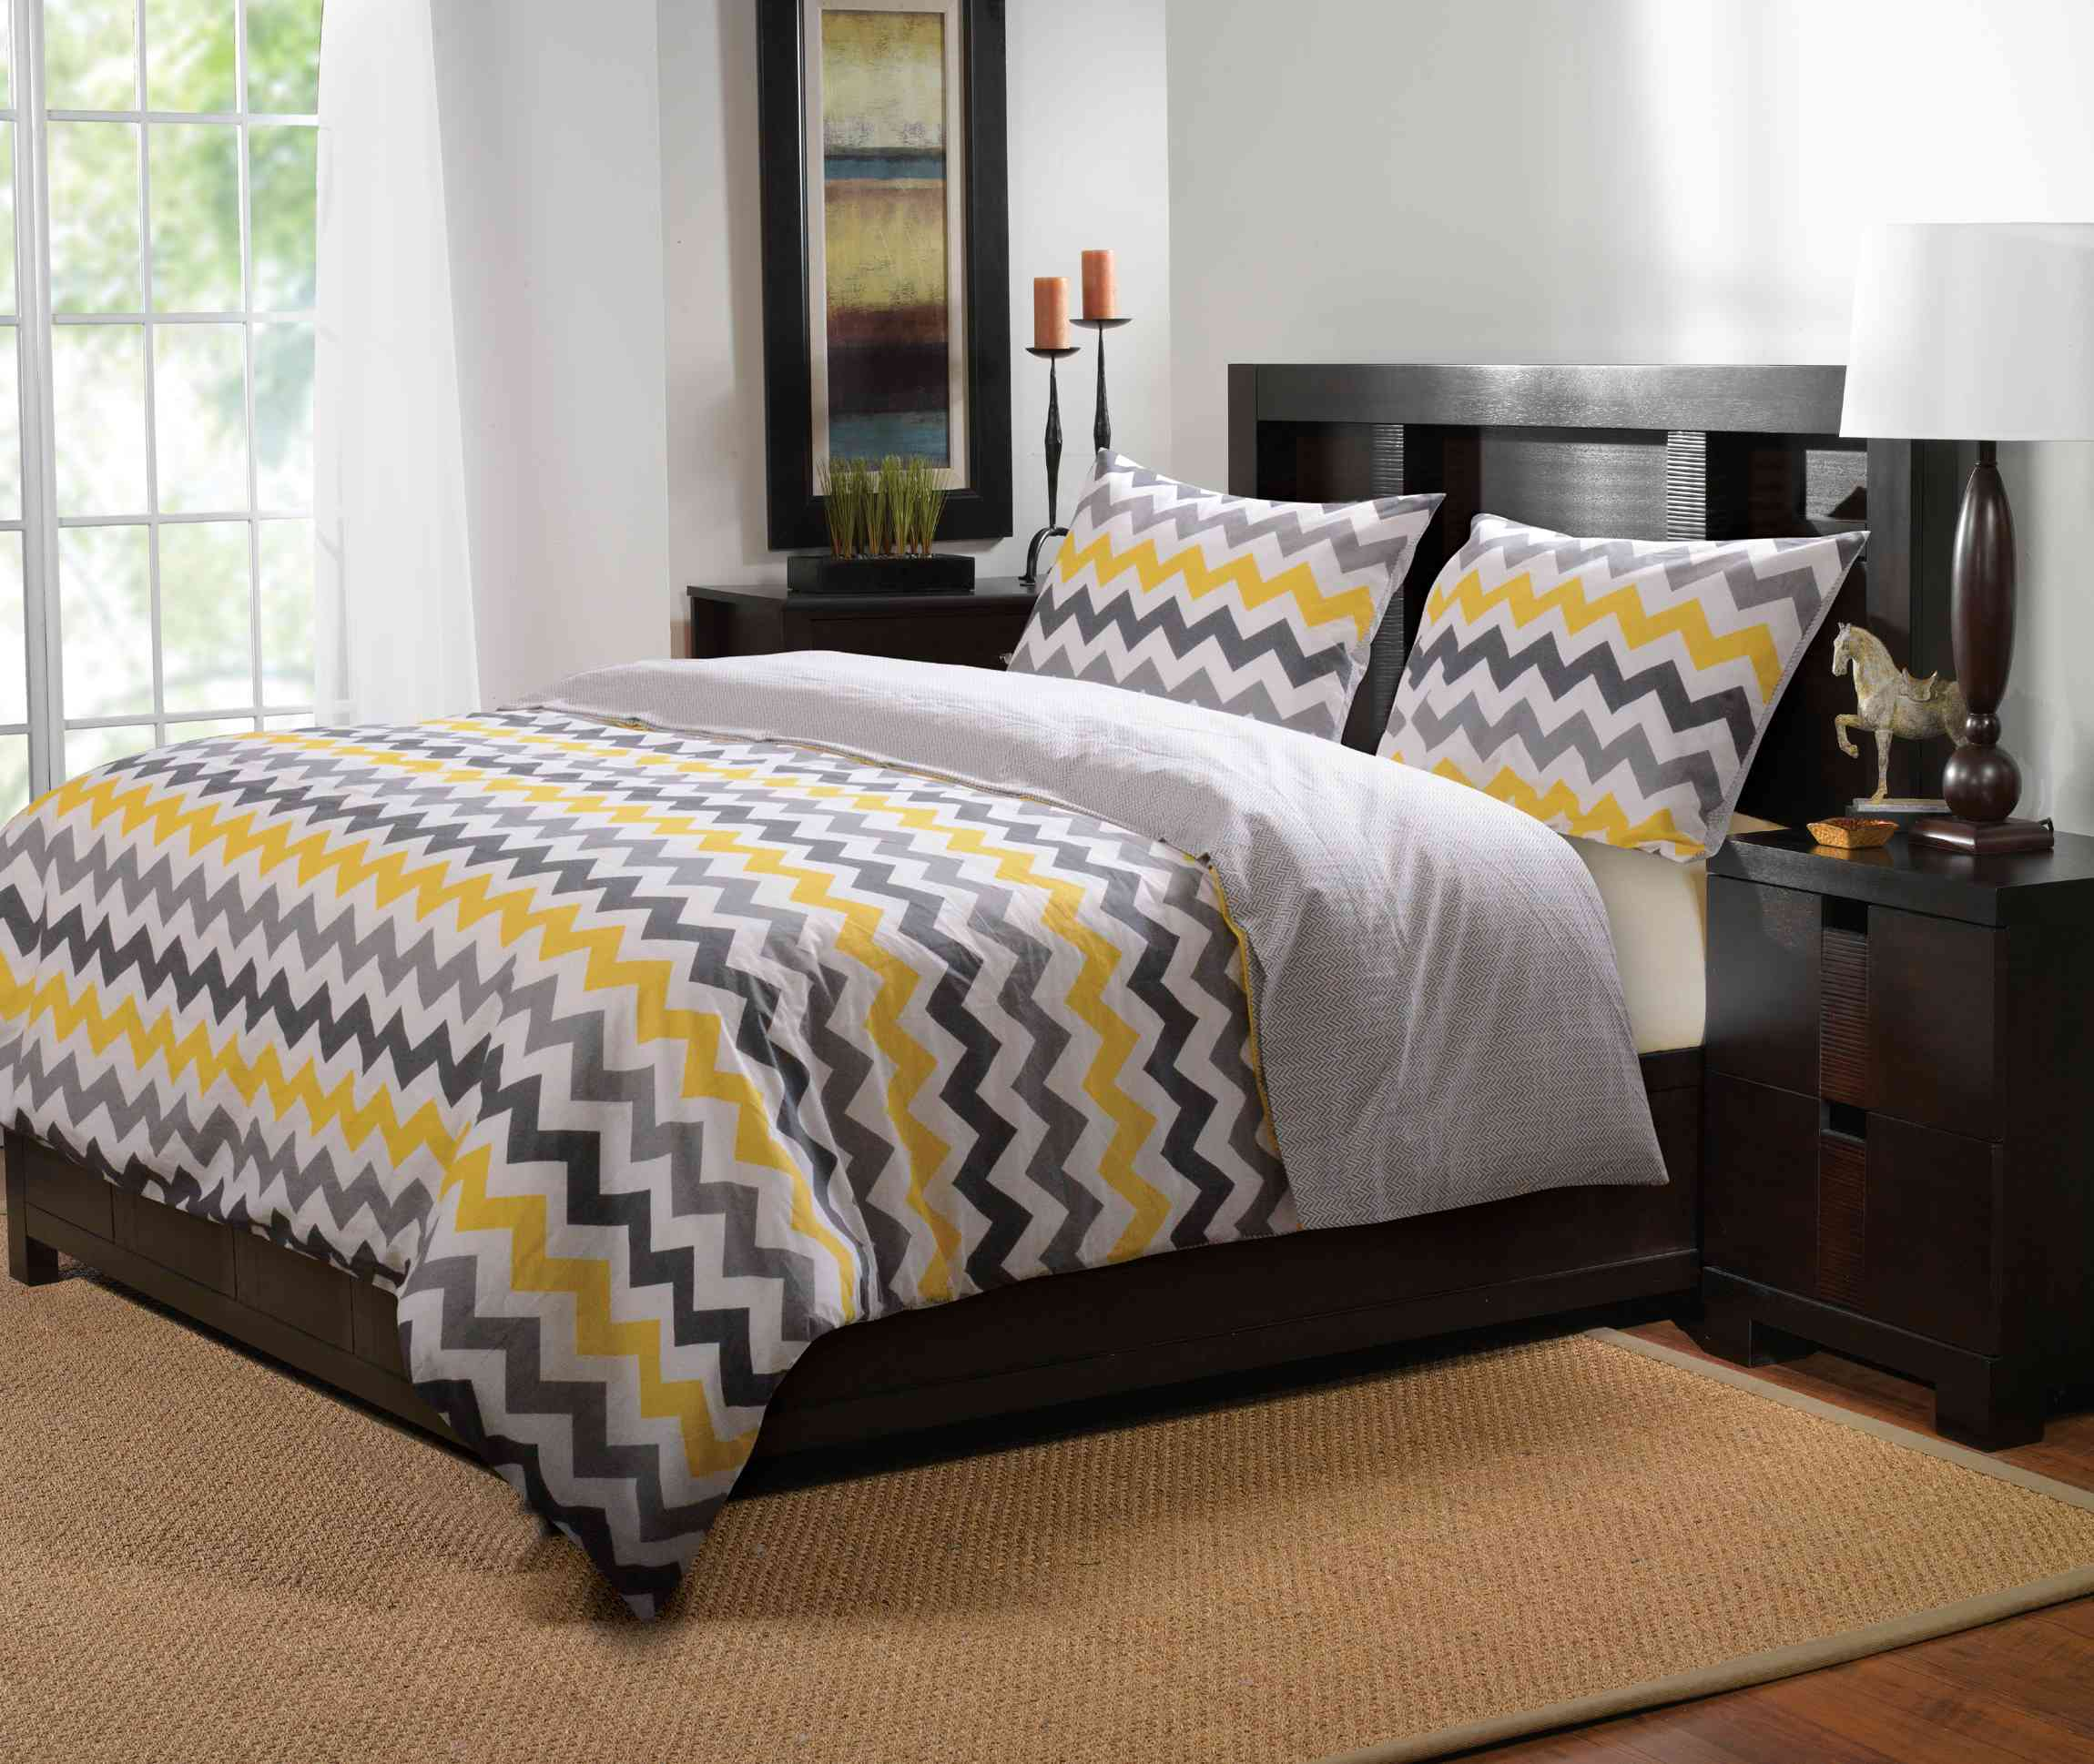 Vida Yellow/gray Duvet Cover Set, 3-pc King